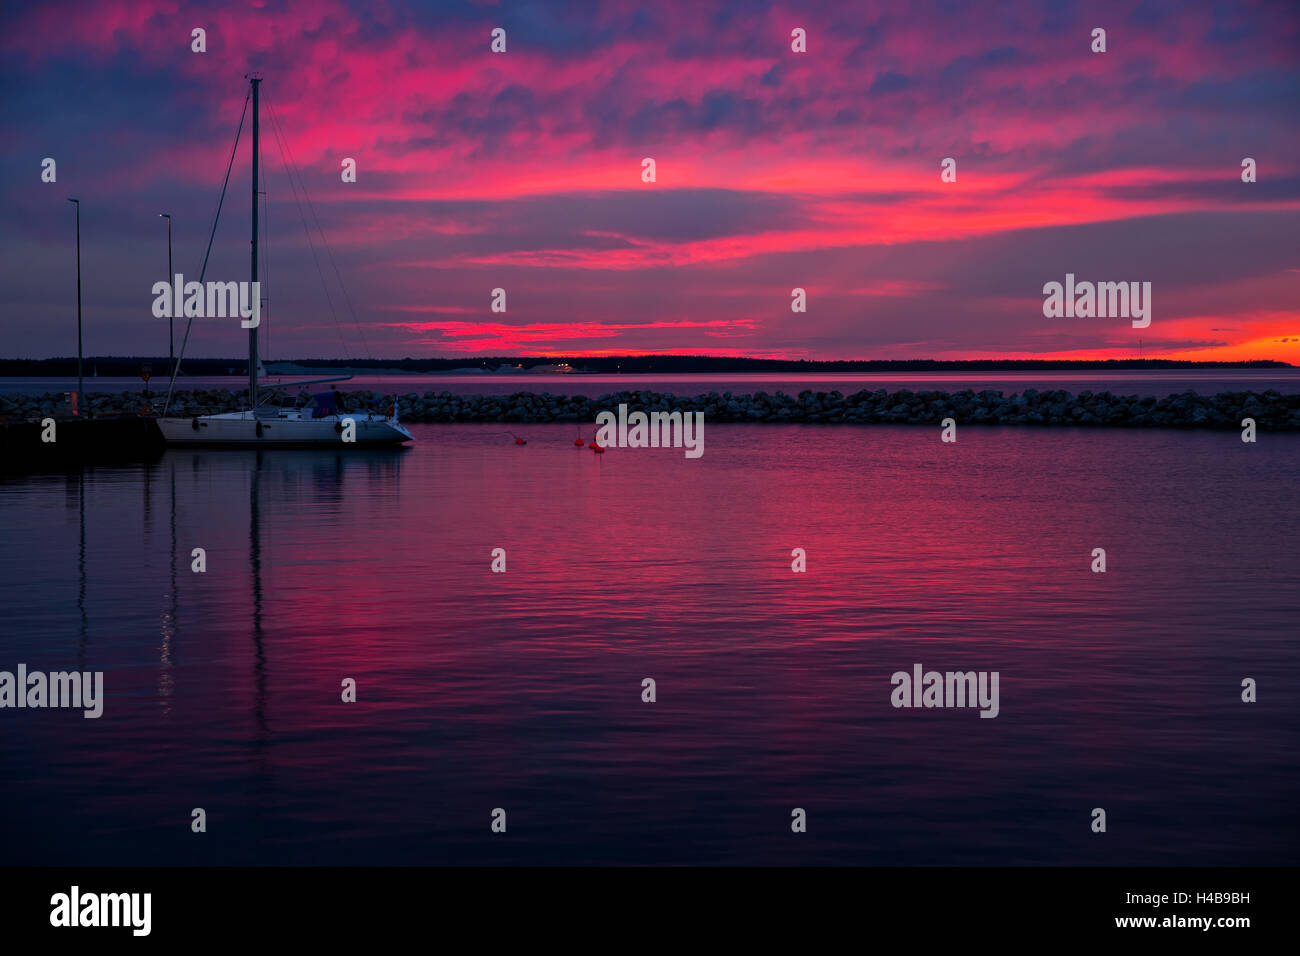 Evening mood in Farösund, Gotland Island, Sweden - Stock Image